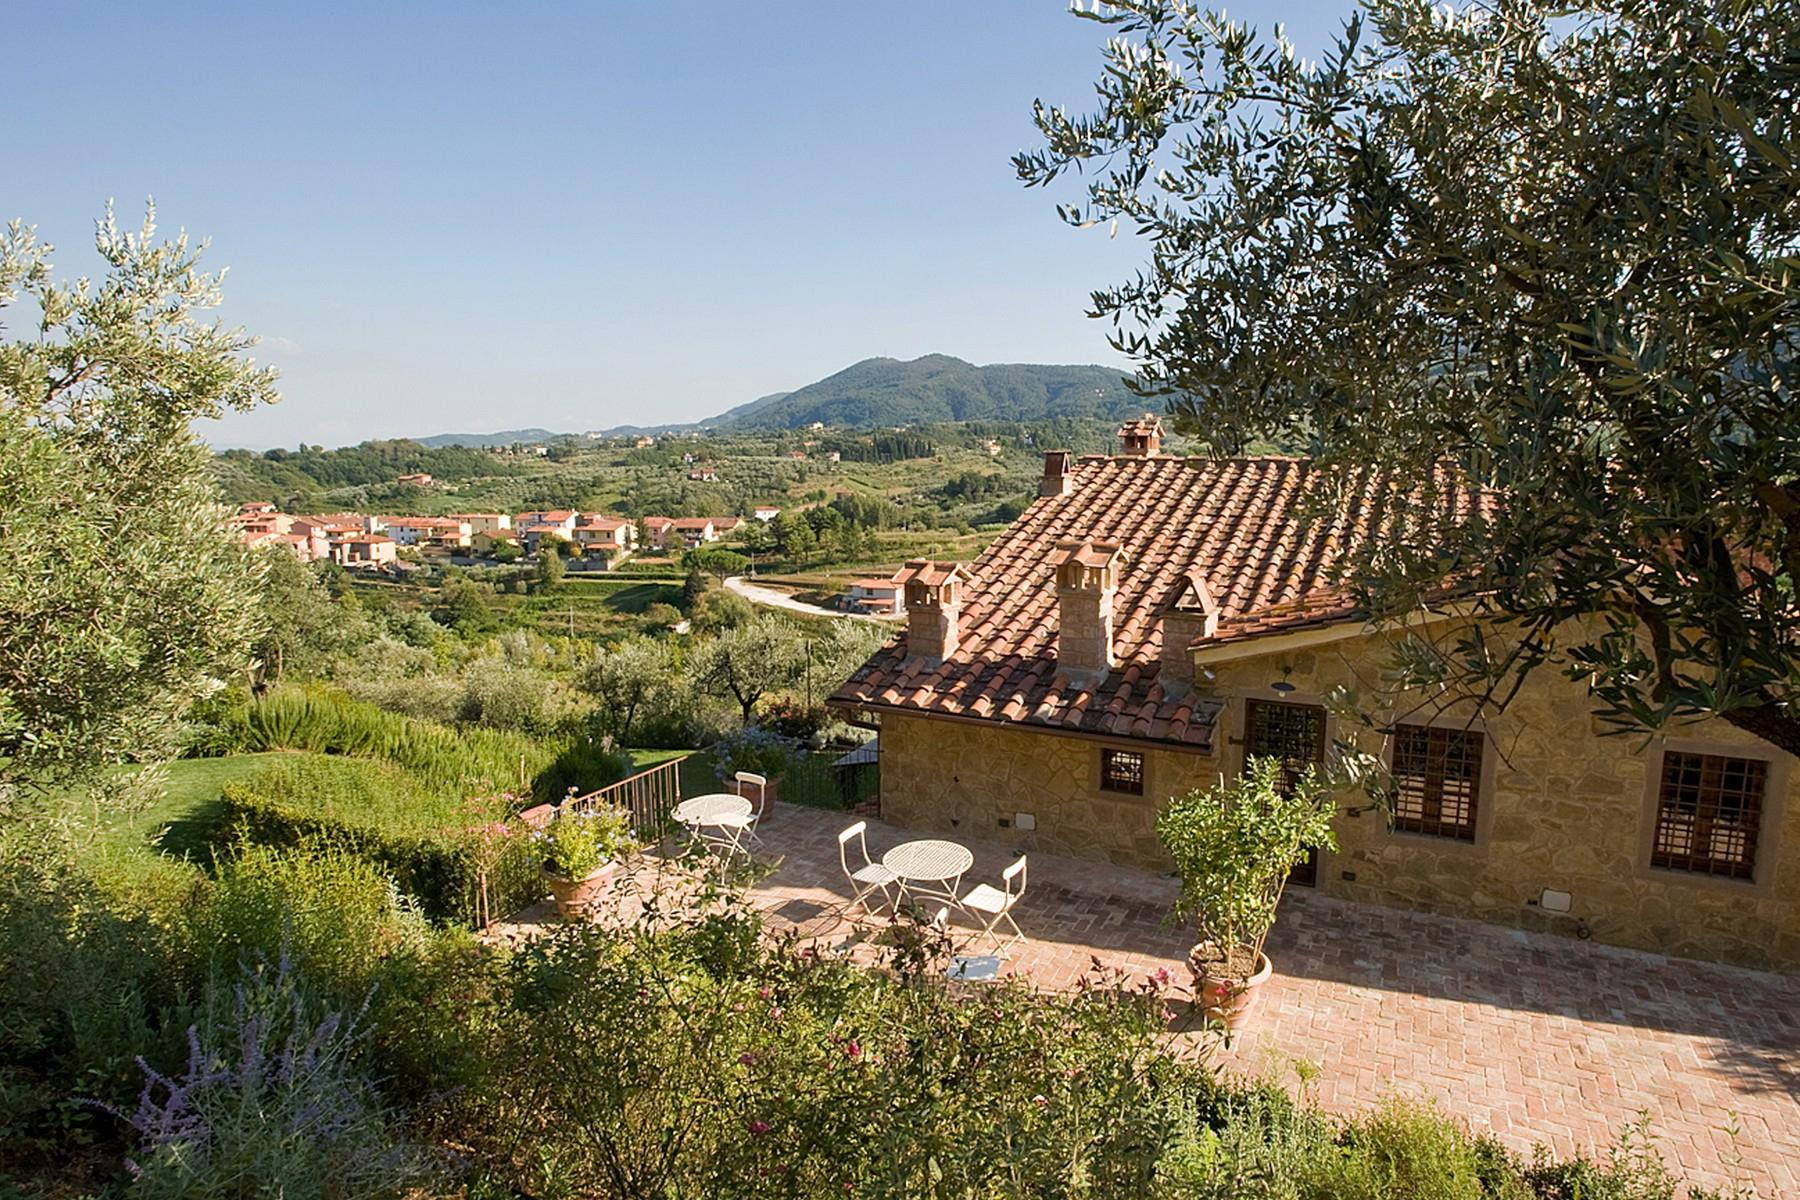 Farmhouse for sale in the Tuscan hills - 20